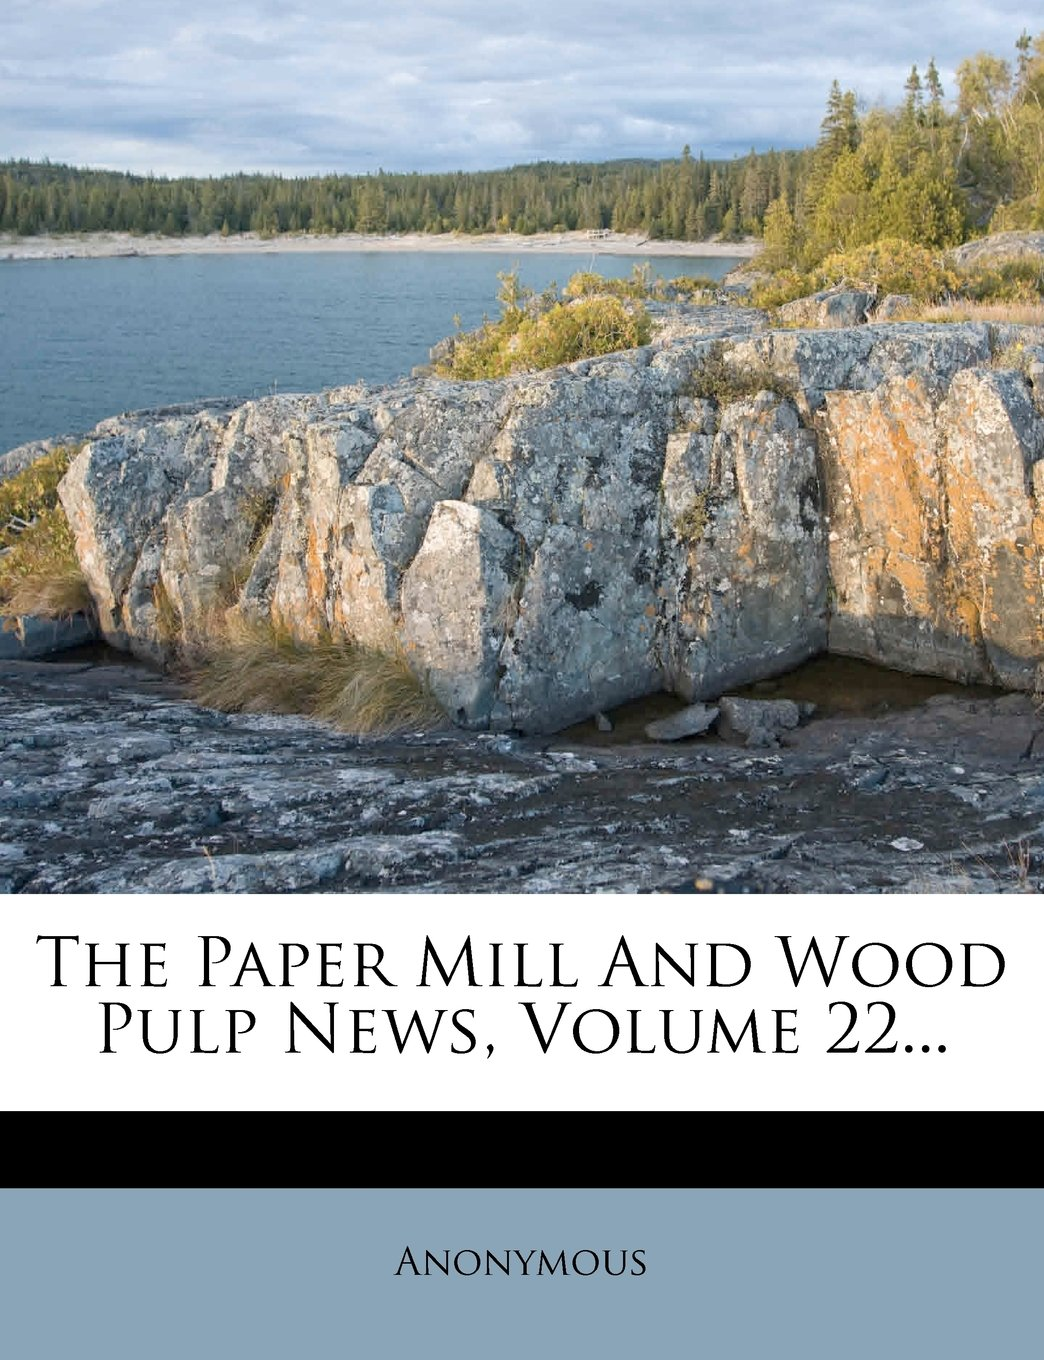 The Paper Mill And Wood Pulp News, Volume 22... ebook